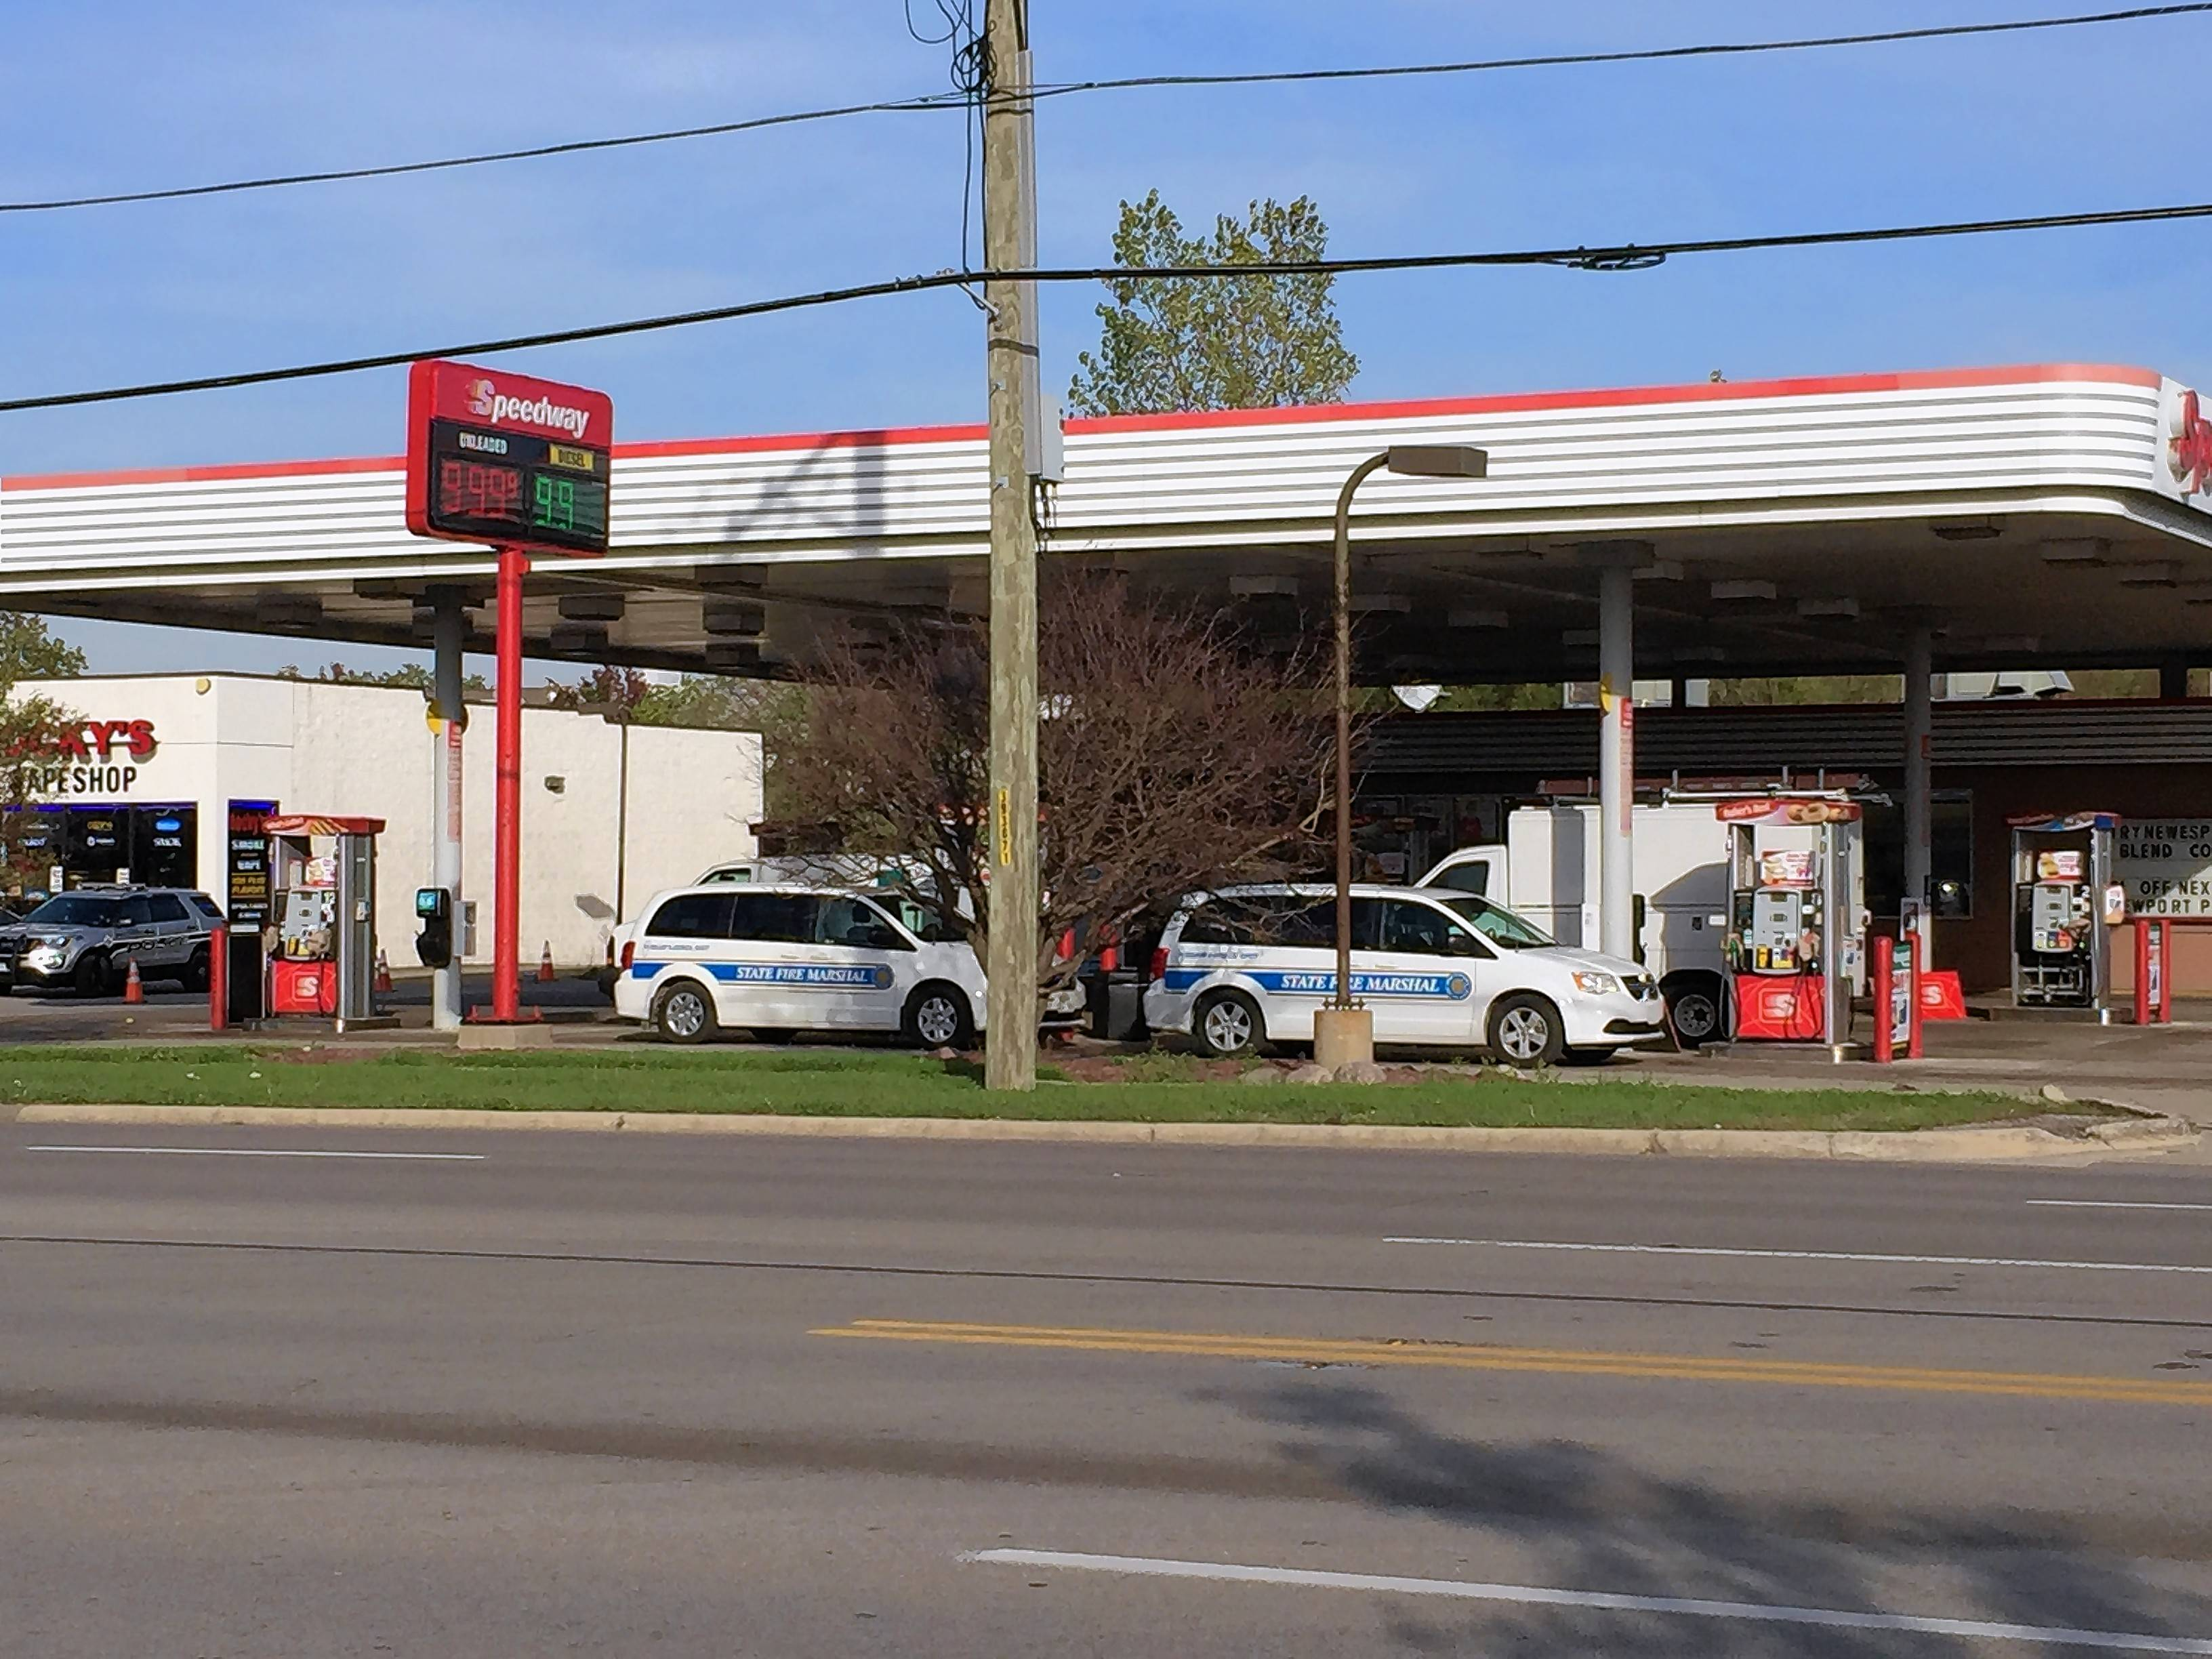 A lawsuit filed by Illinois Attorney General Lisa Madigan and DuPage County State's Attorney Robert Berlin seeks to keep this Speedway station closed at 6241 Cass Ave. in Westmont.